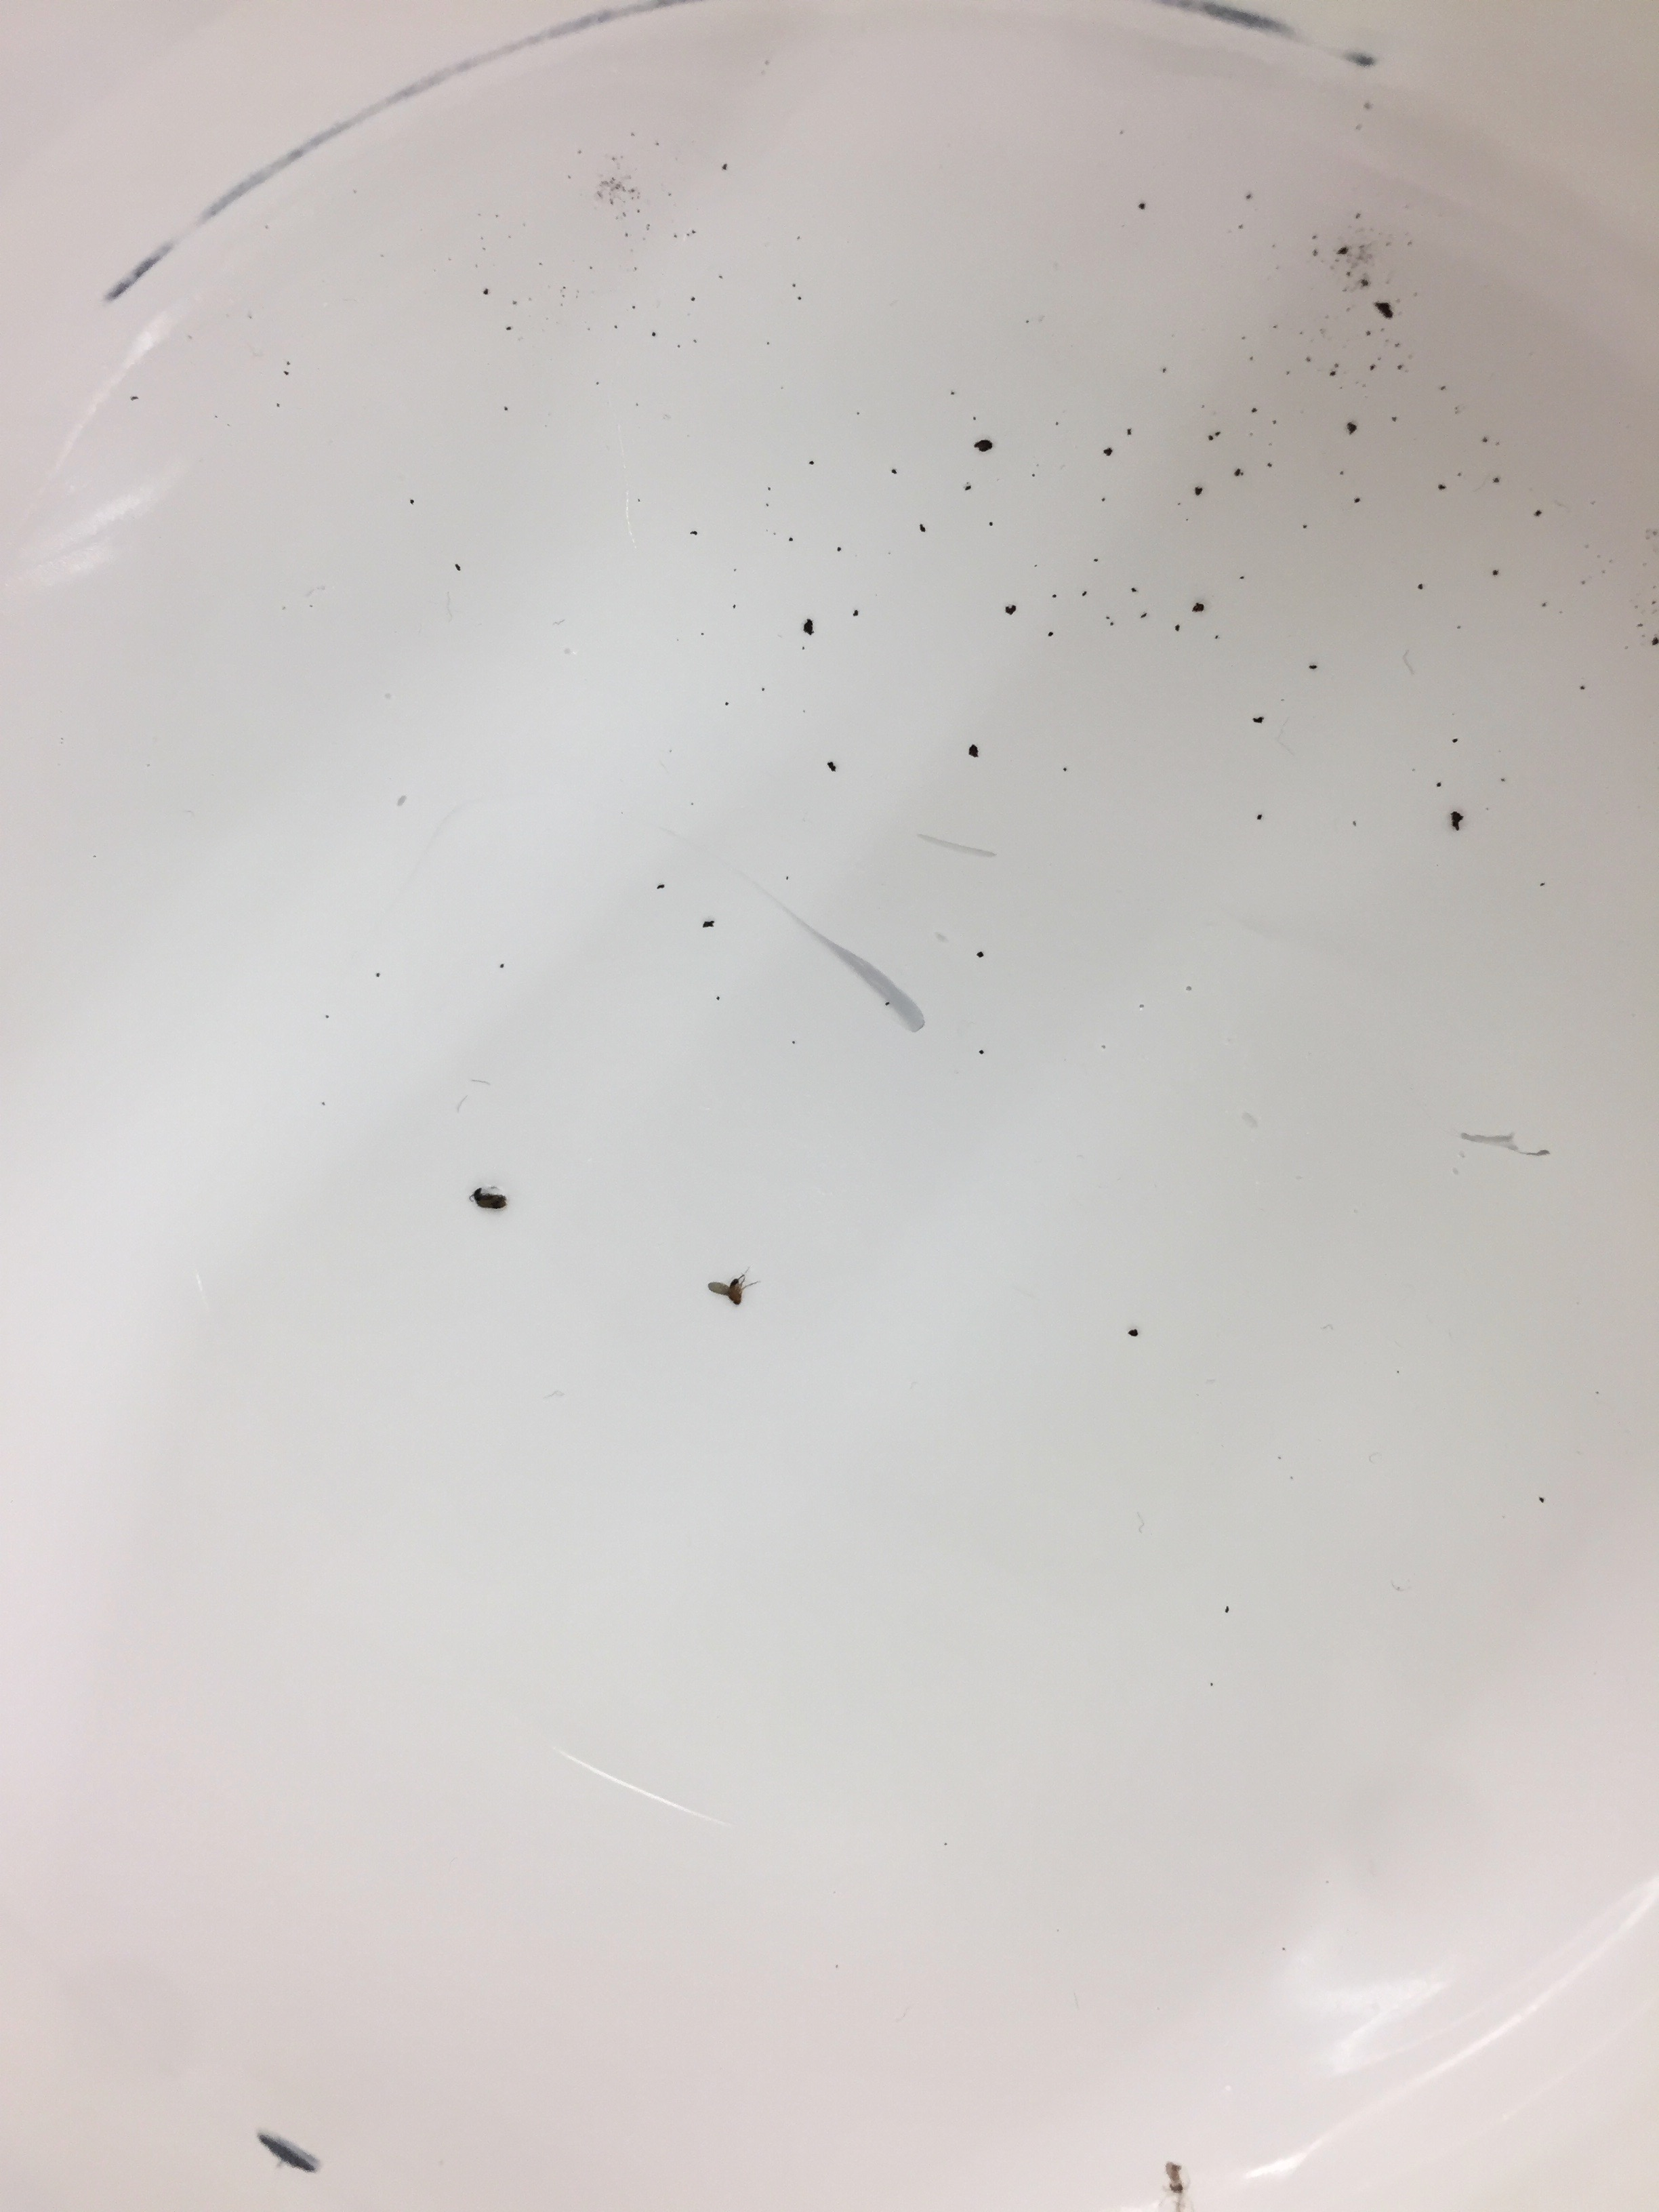 Found a bug in the white paint!